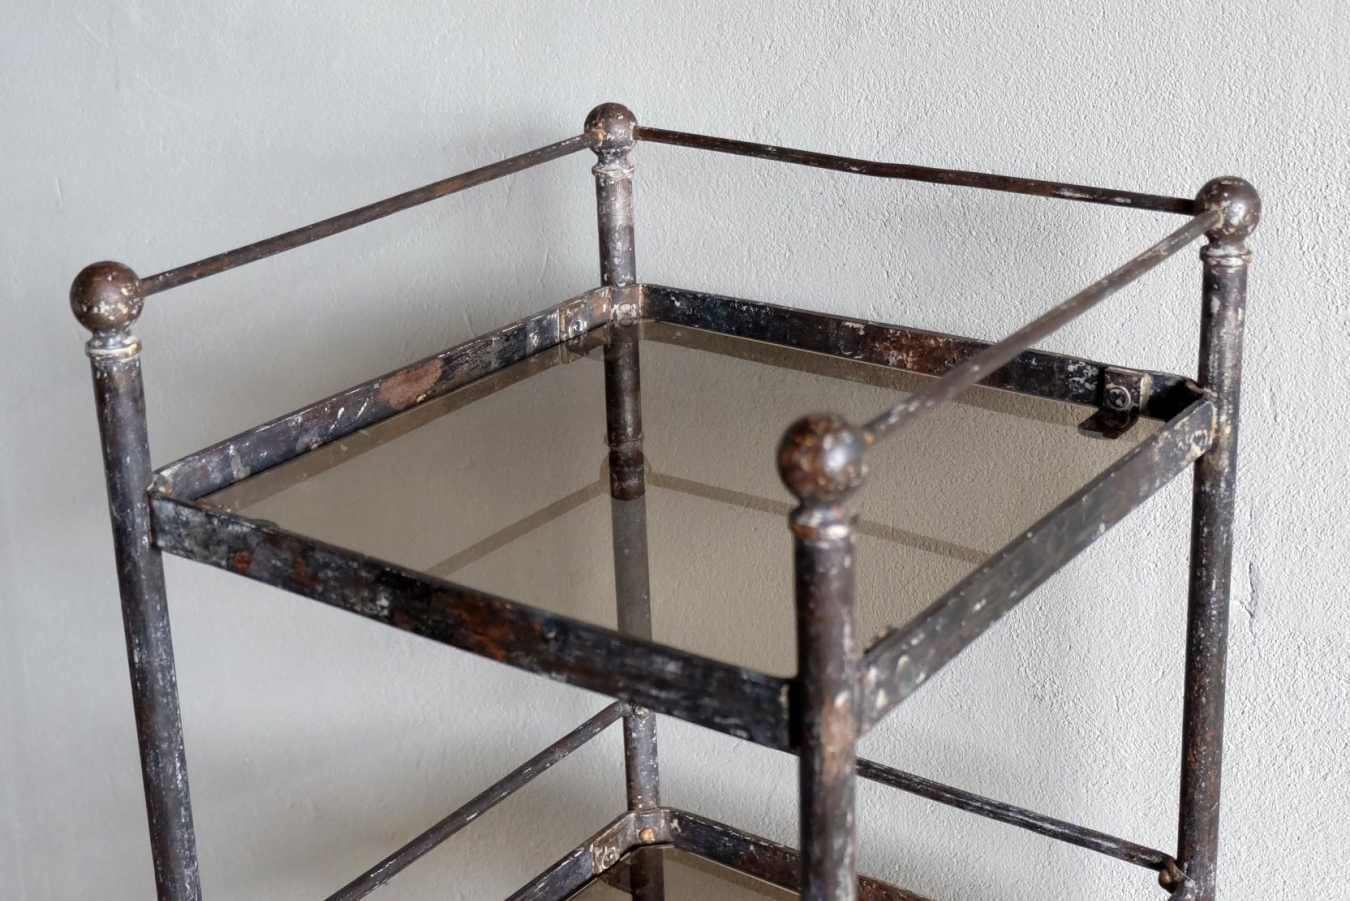 French metal etagere trendfirst - Etagere metal industriel ...